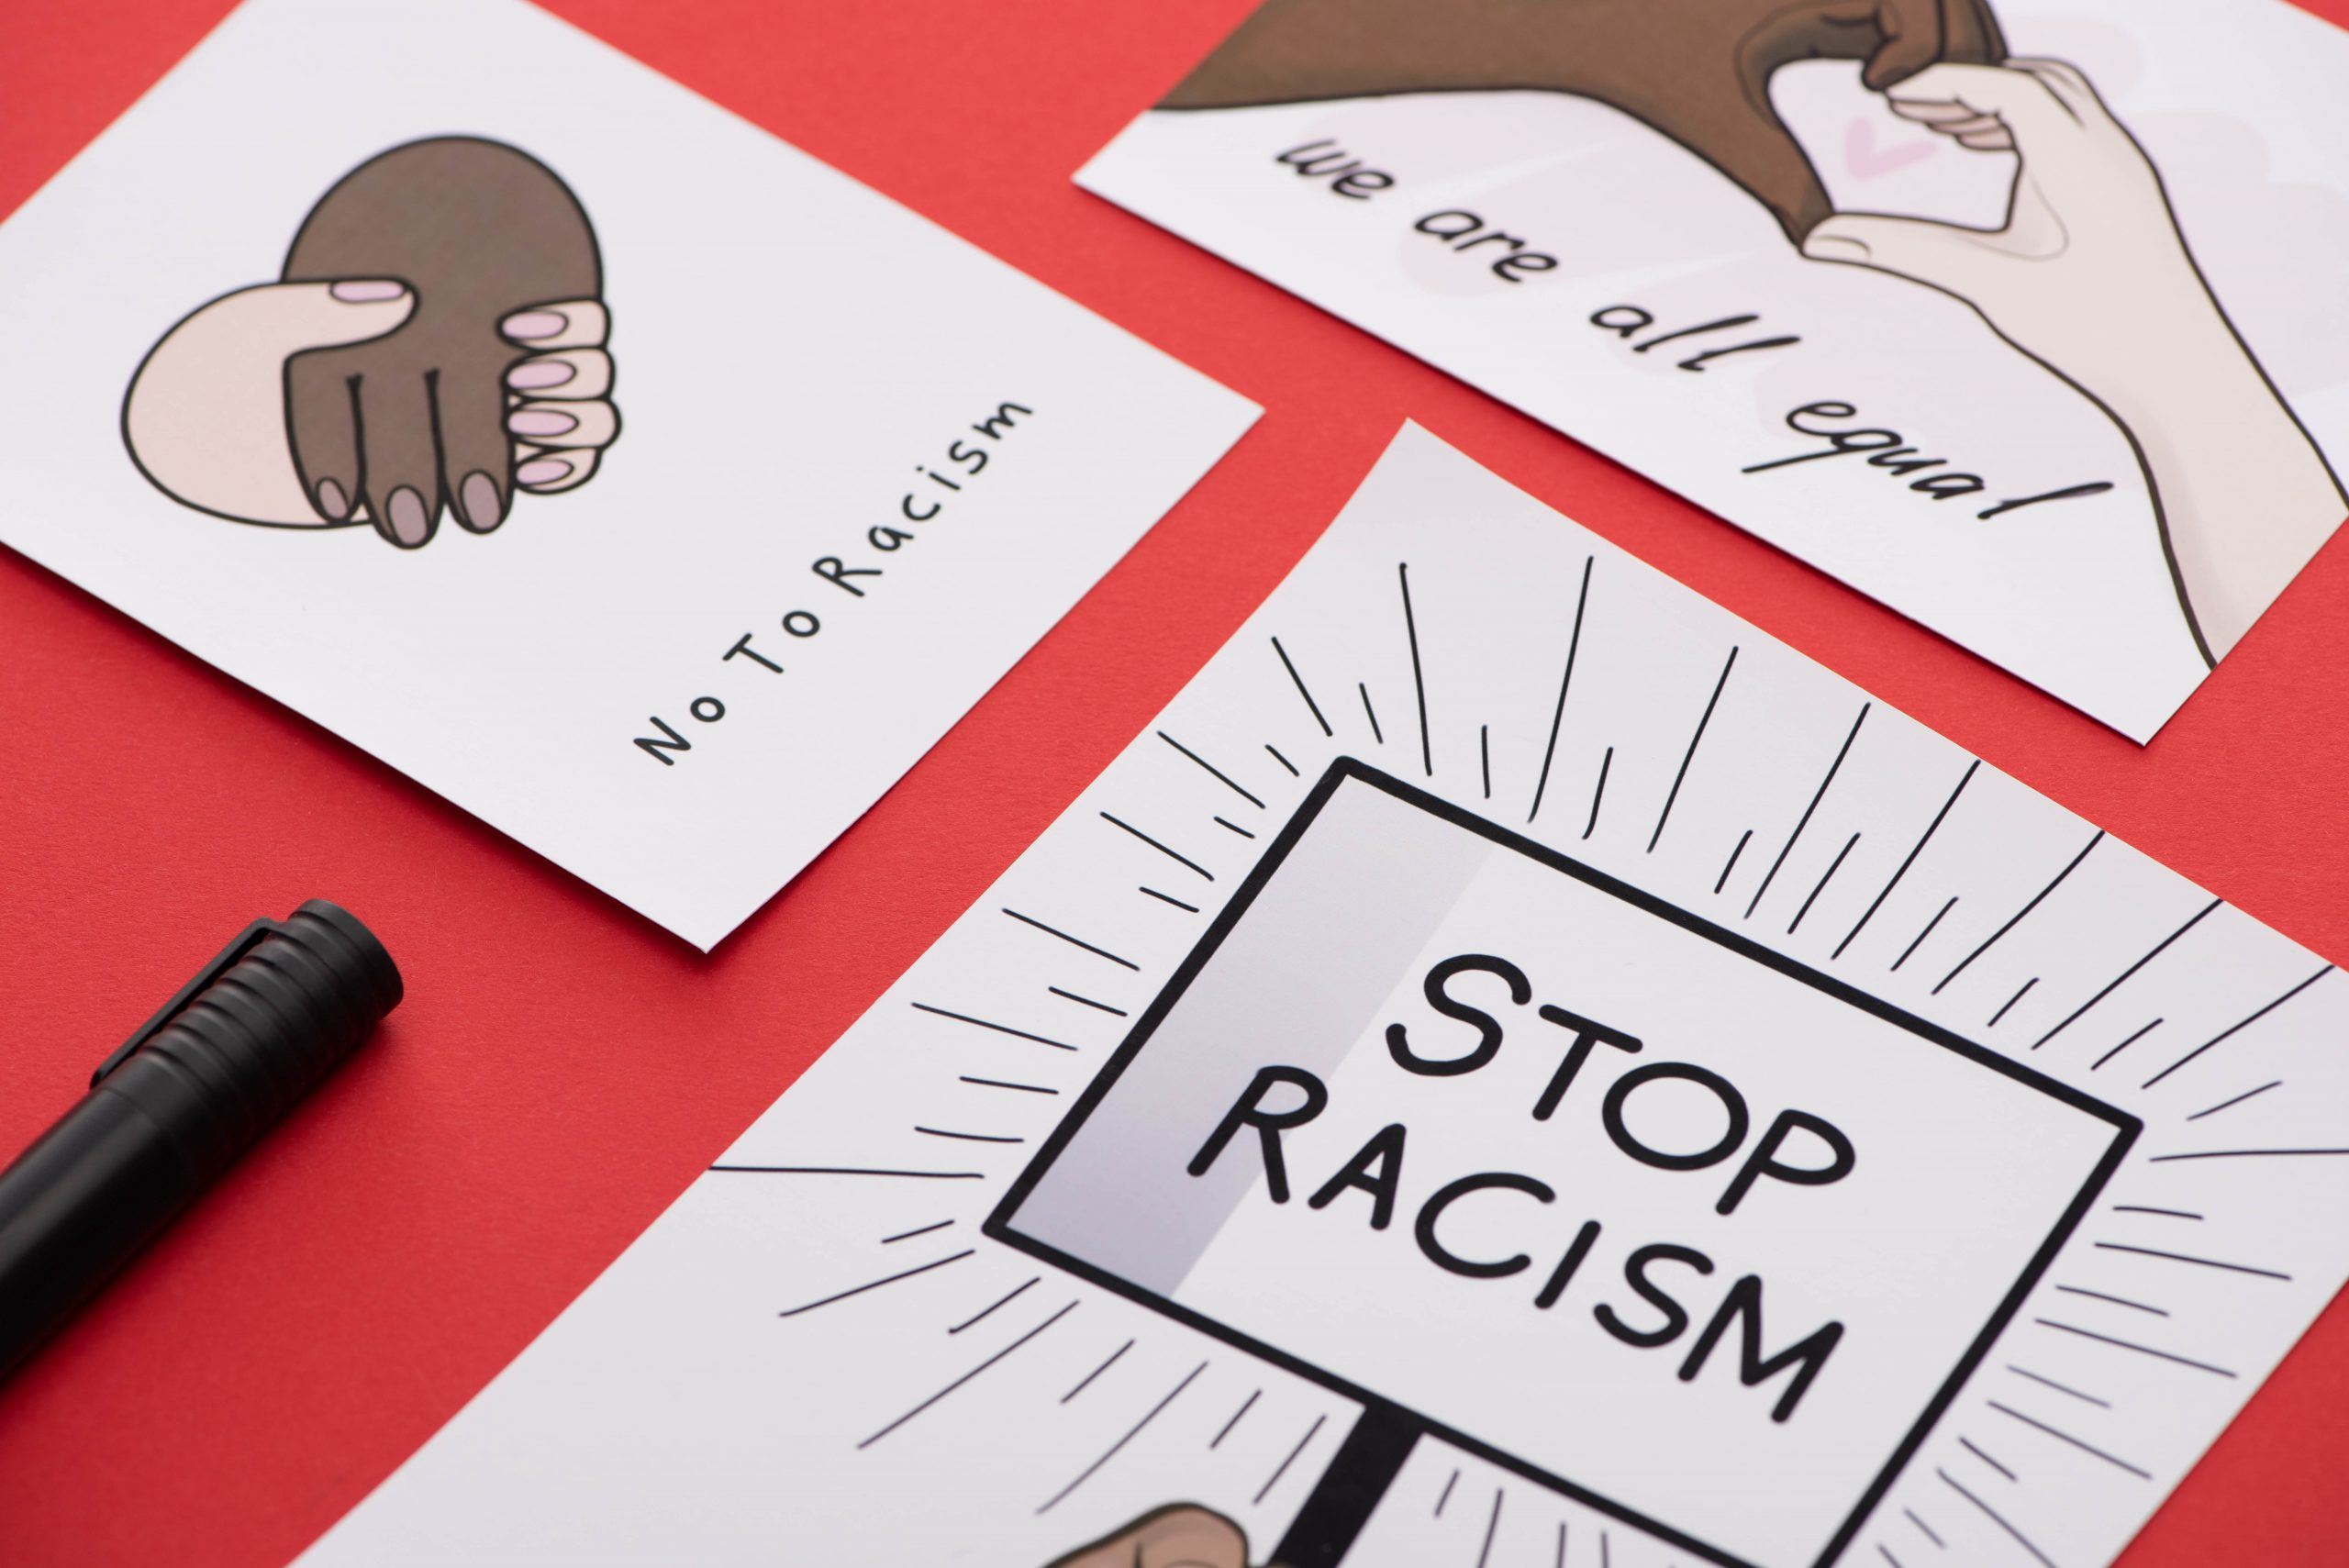 How Law Firms Can Advocate for Social Justice and Racial Equality